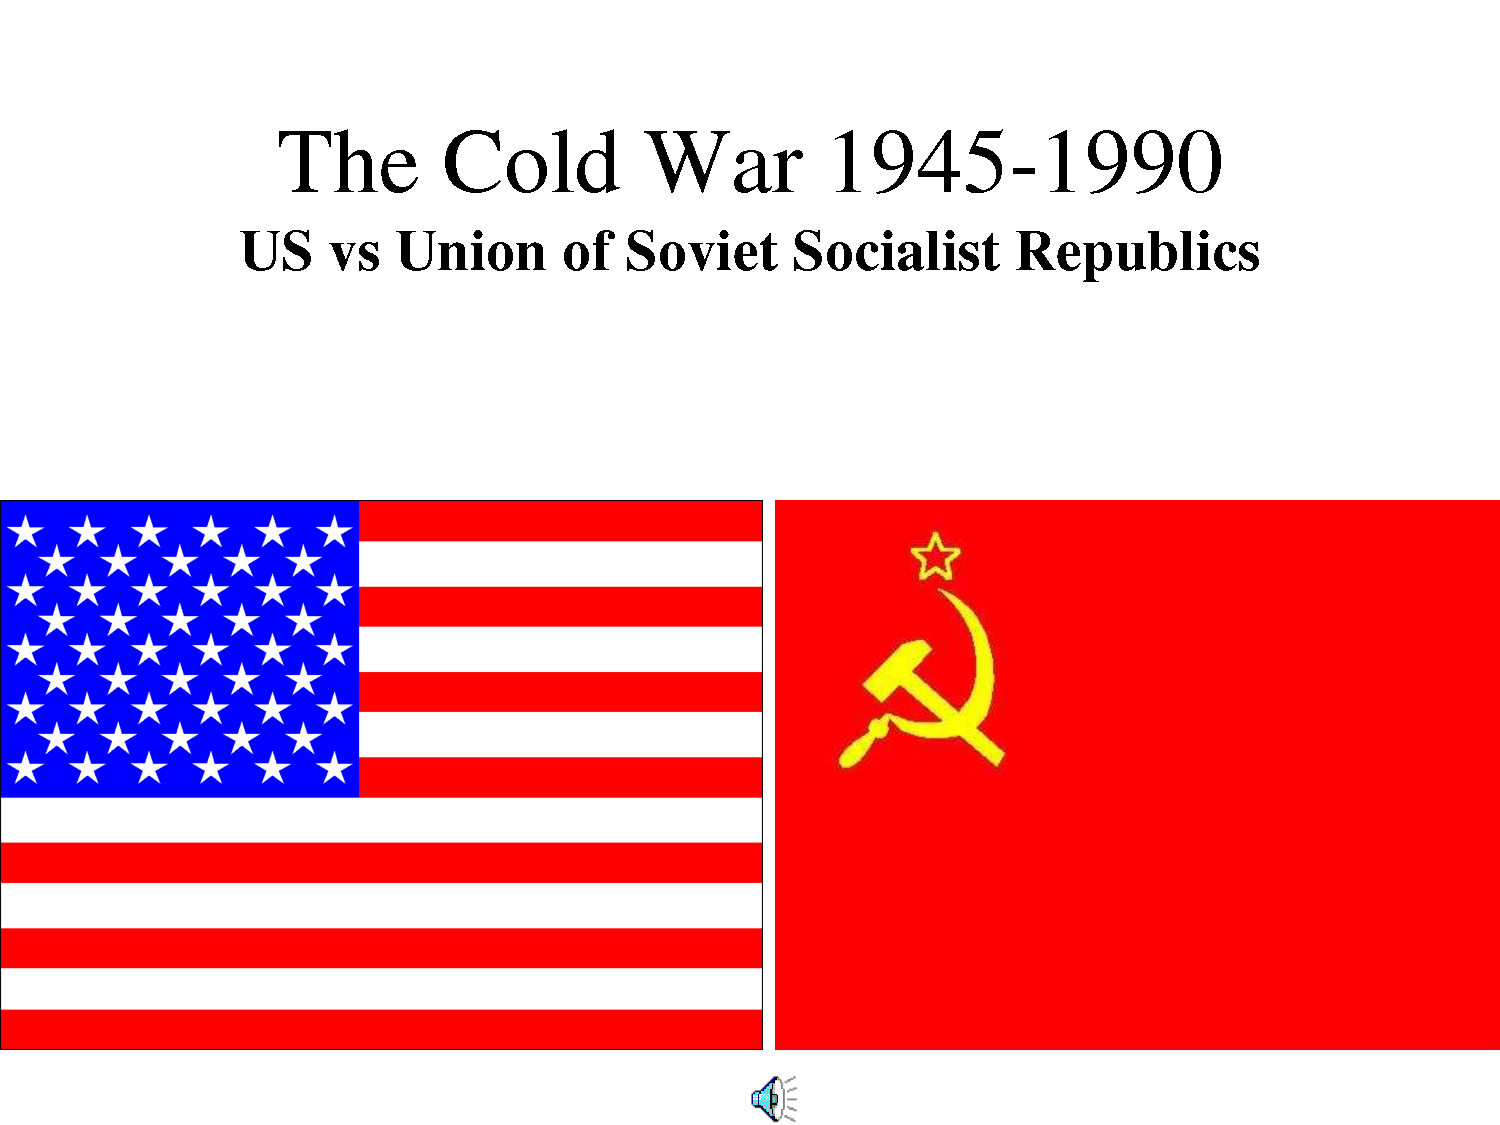 the soviet union and the usa essay Us-soviet alliance, 1941-1945 although relations between the soviet union and the united states had been strained in the years before world war ii, the us-soviet alliance of 1941-1945 was marked by a great degree of cooperation and was essential to securing the defeat of nazi germany.